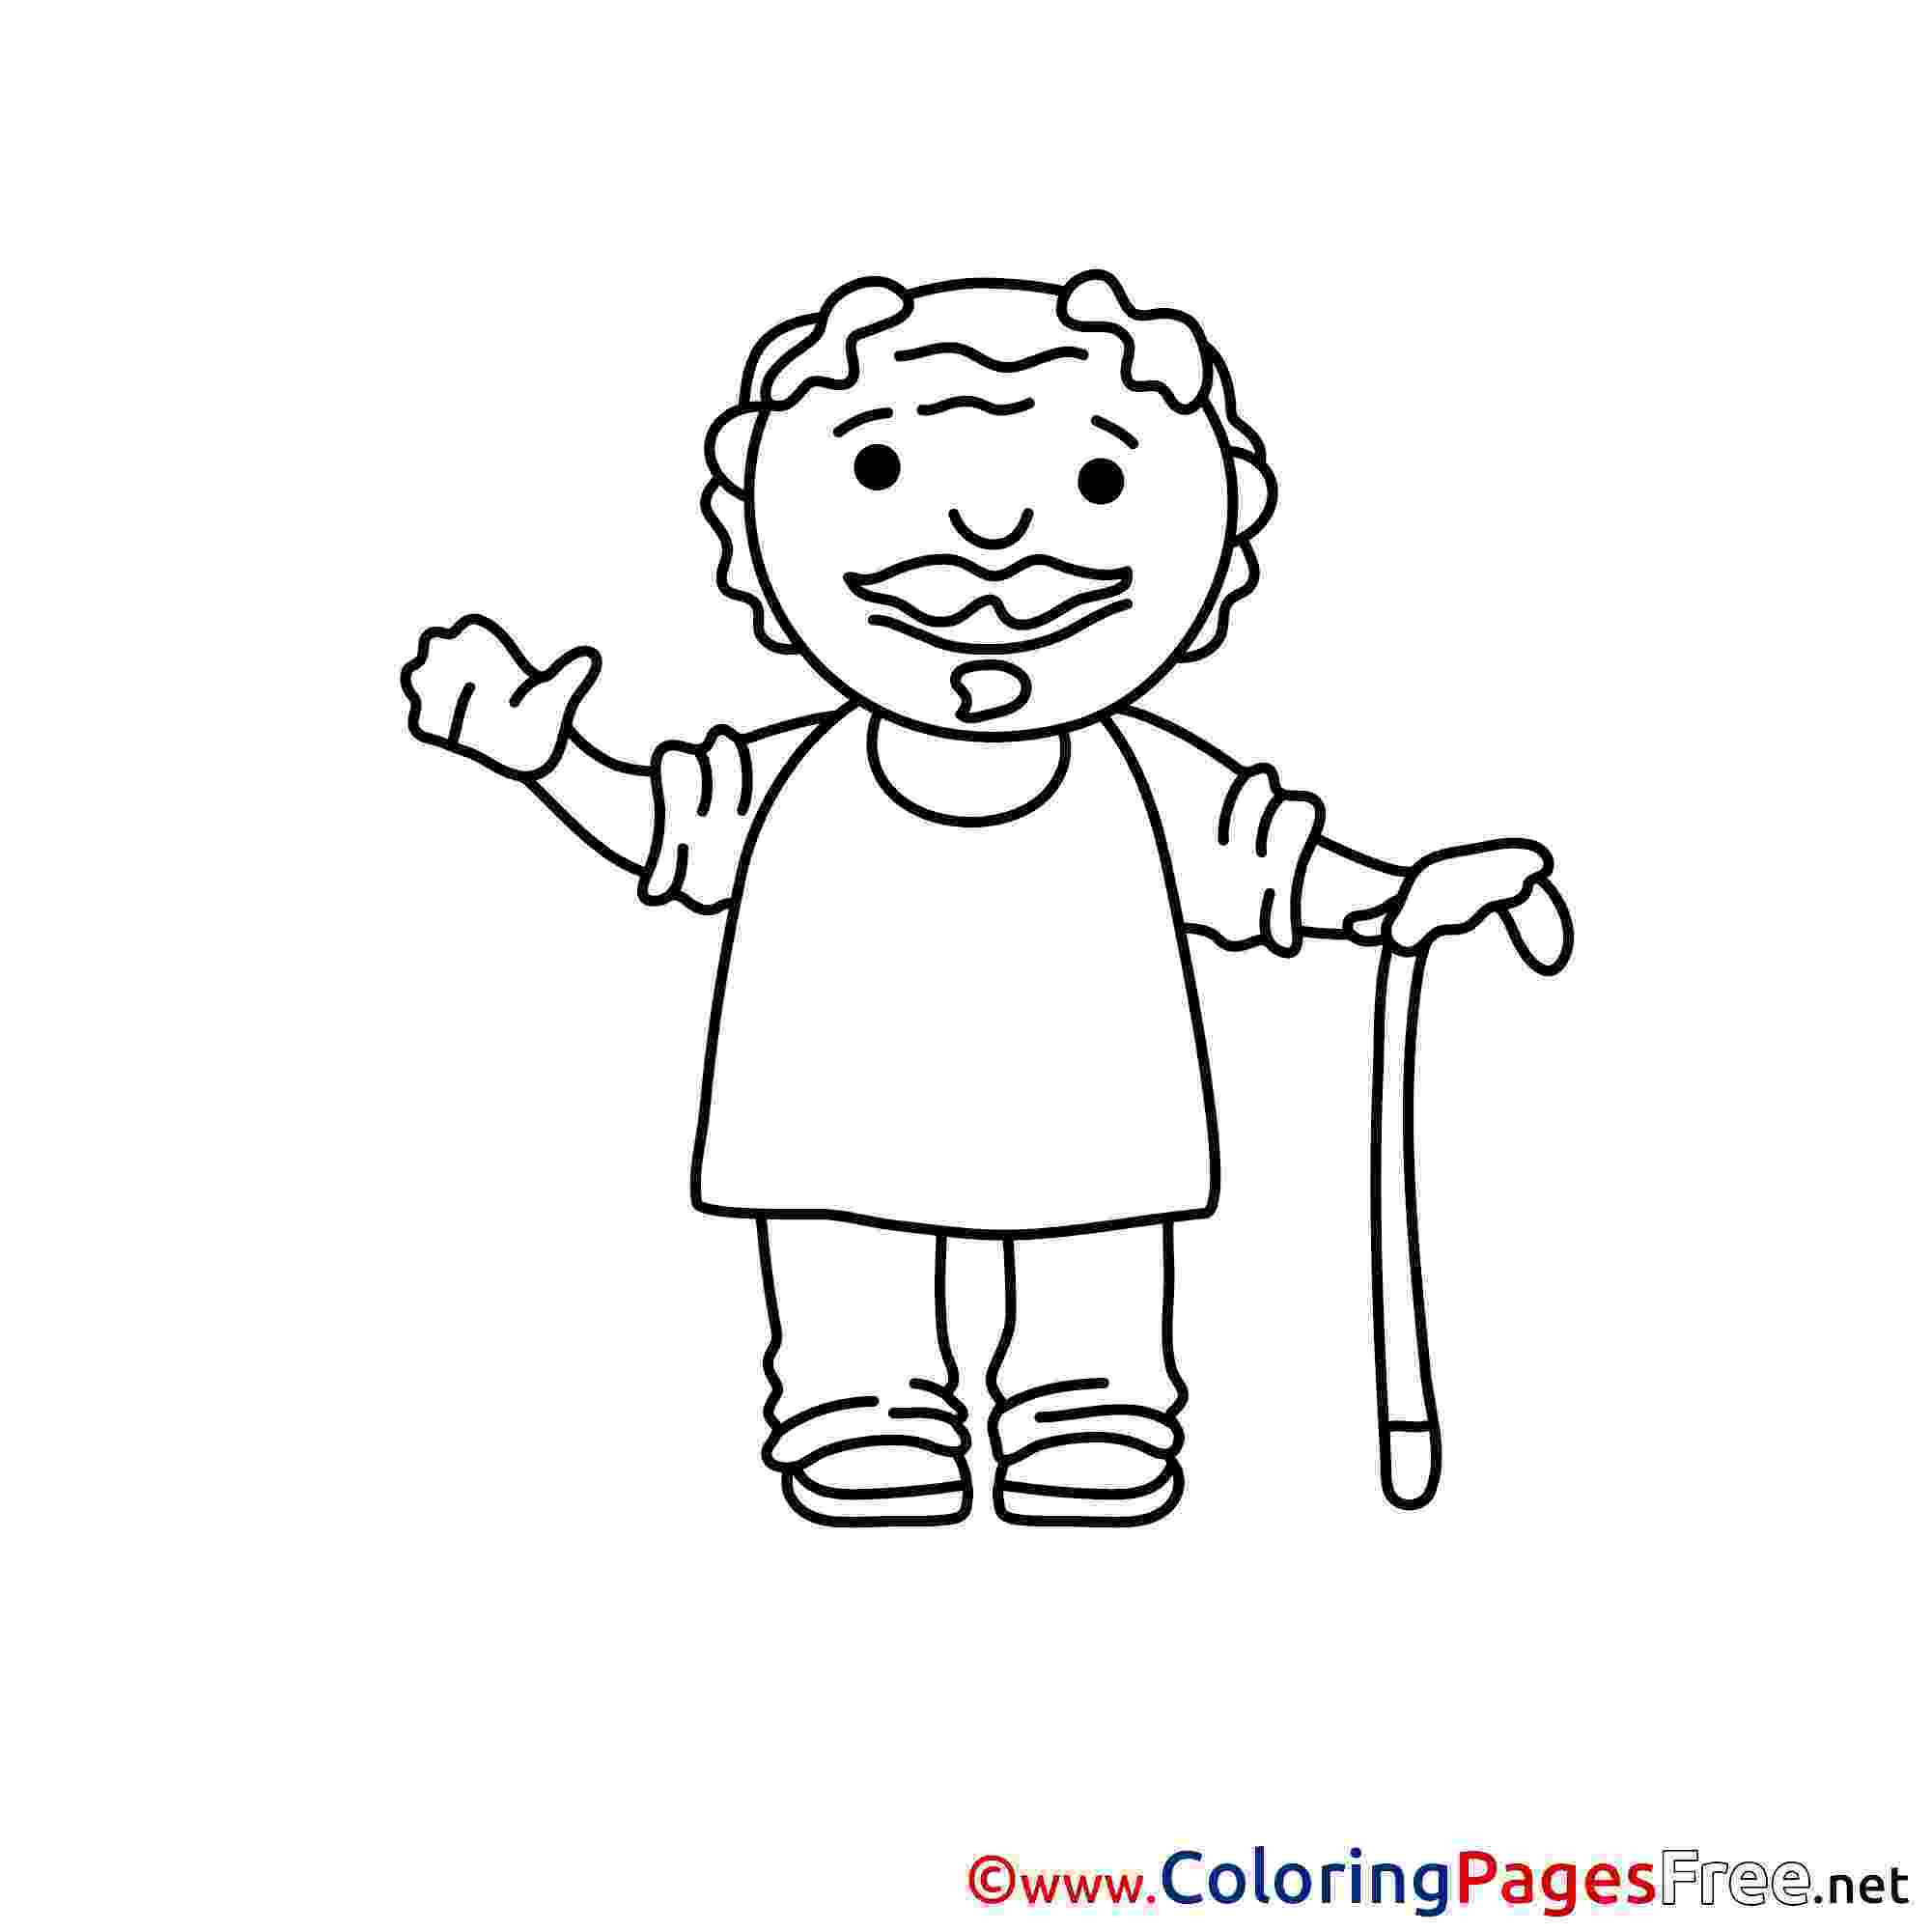 old man coloring pages american indian old man coloring page wecoloringpagecom man old pages coloring